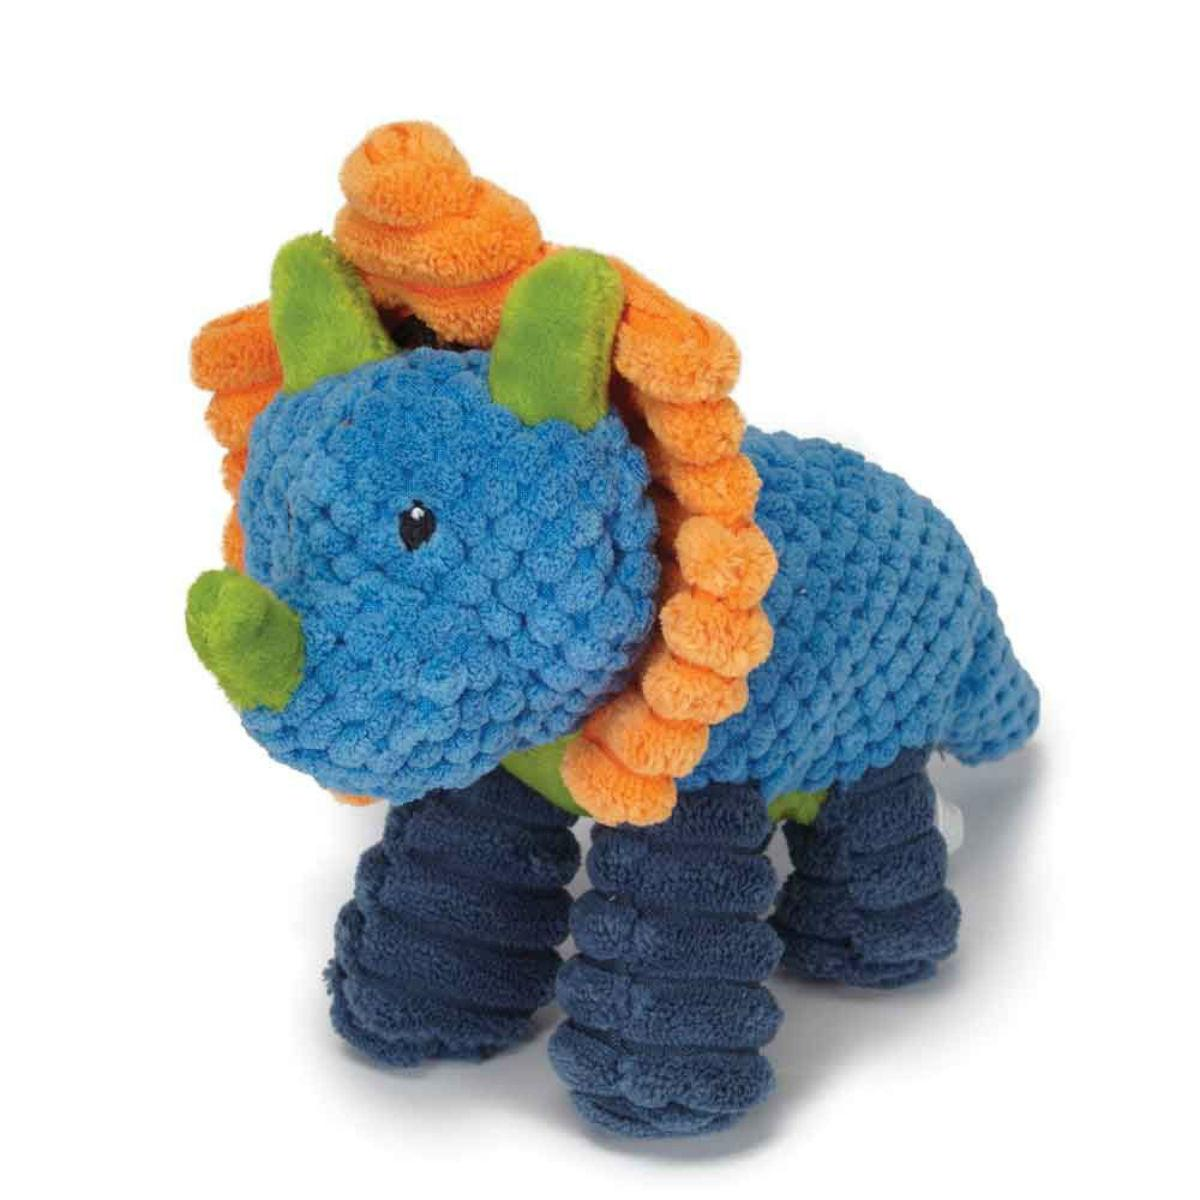 Play 365 Jurassic Cord Crew Triceratops Dog Toy - Blue